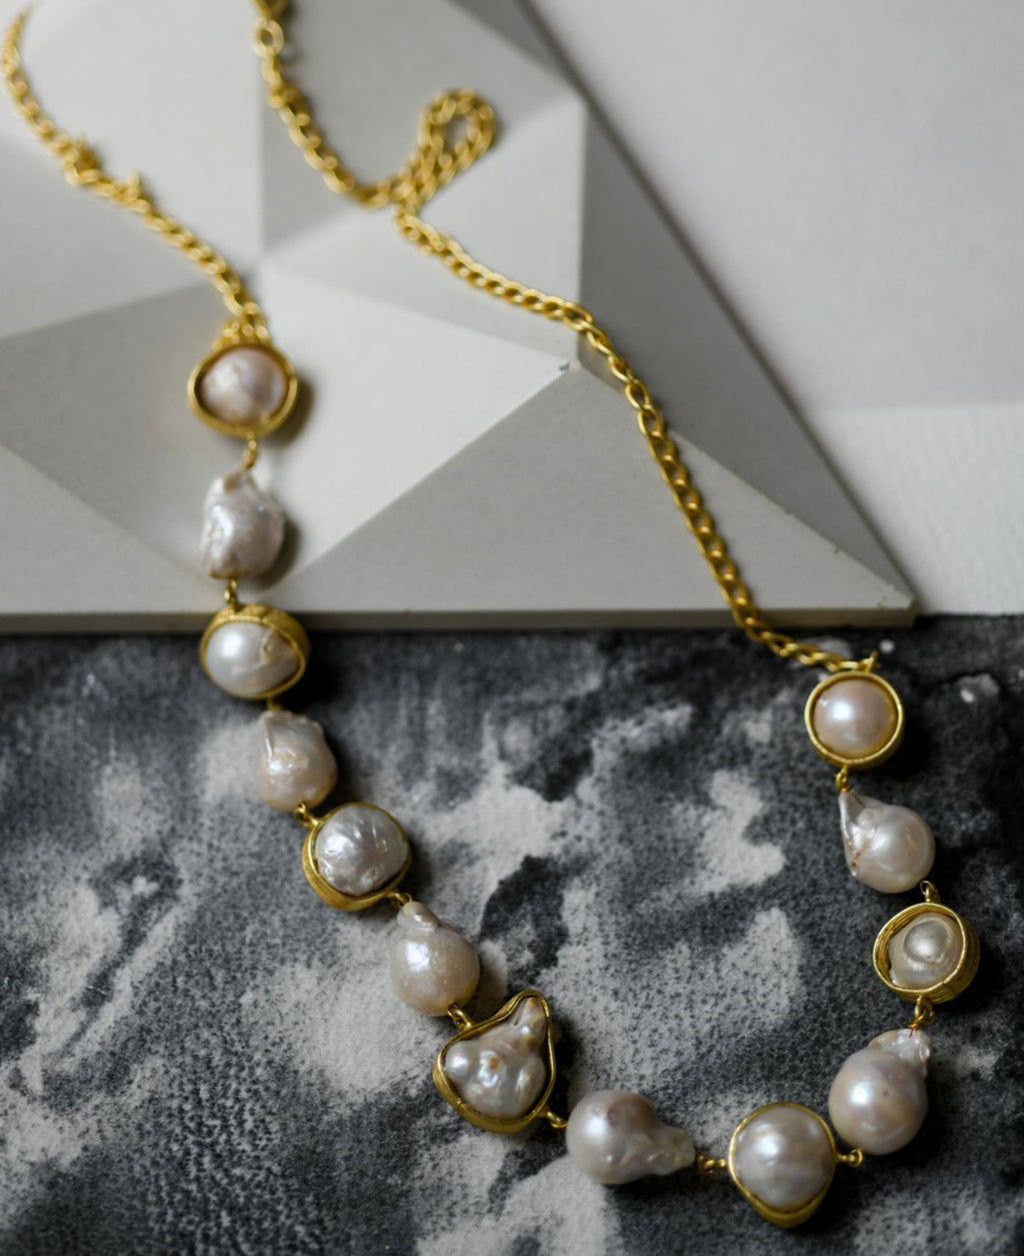 Cased baroque pearls in a gold-toned necklace with half chain